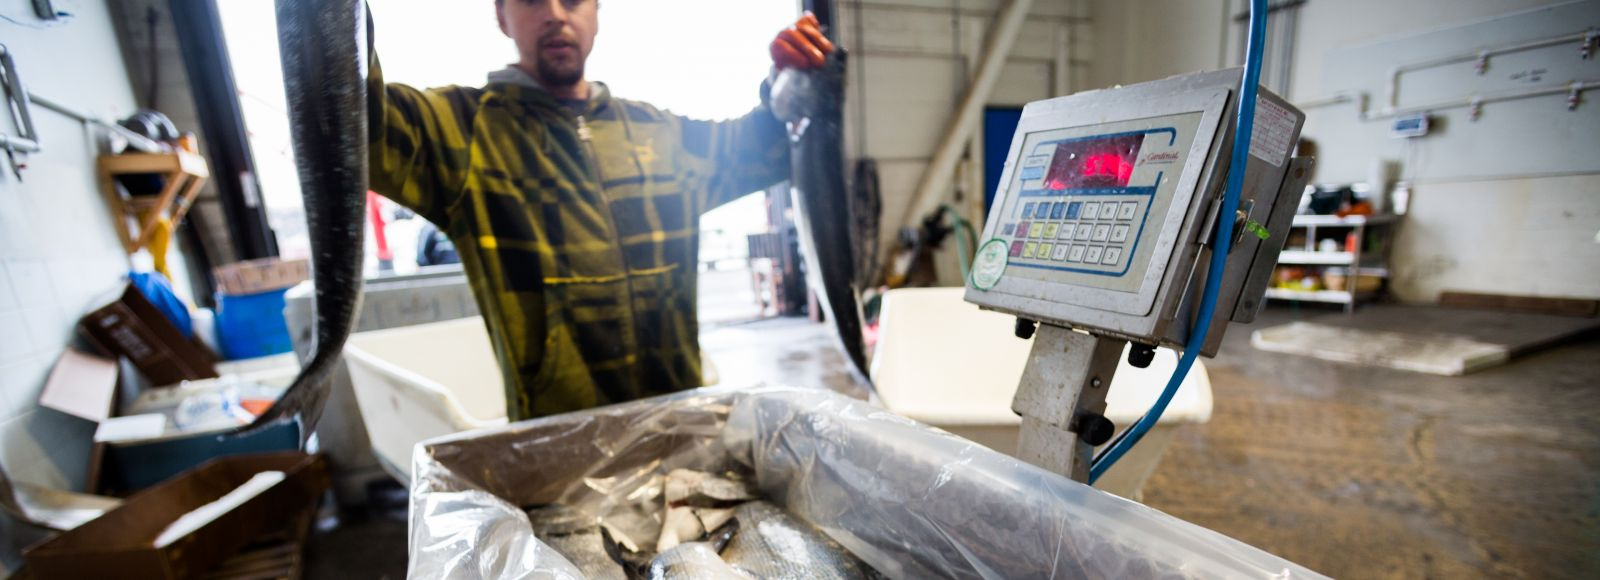 A fisherman weighs and packages fish before delivery.